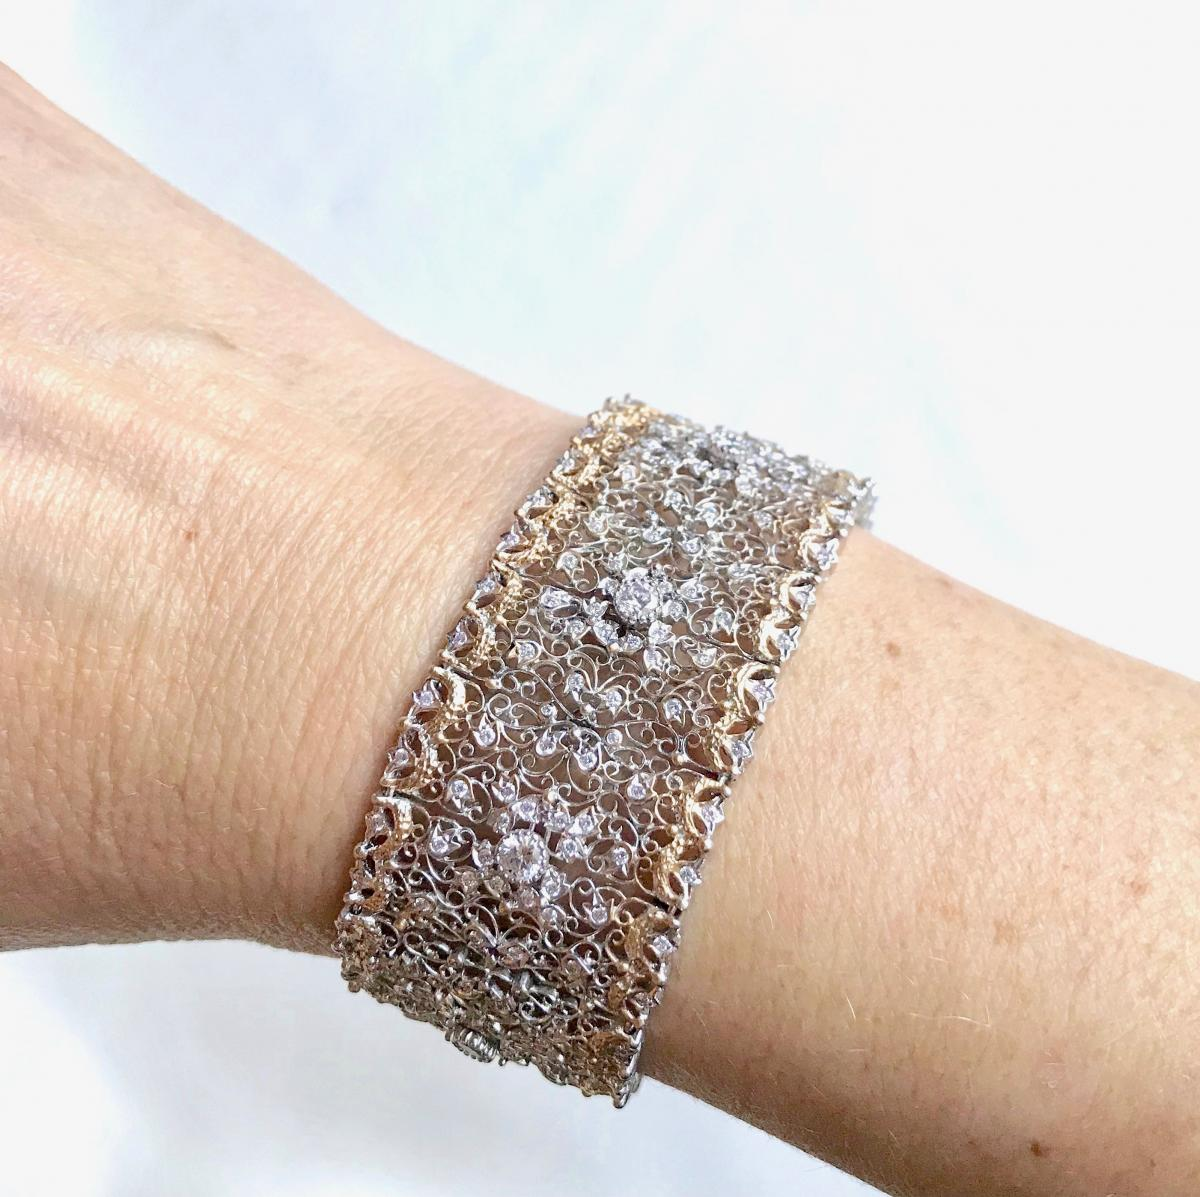 Beautiful Fishnet Bracelet Yellow Gold And White Gold 18 Kt Inlaid With Diamonds-photo-1